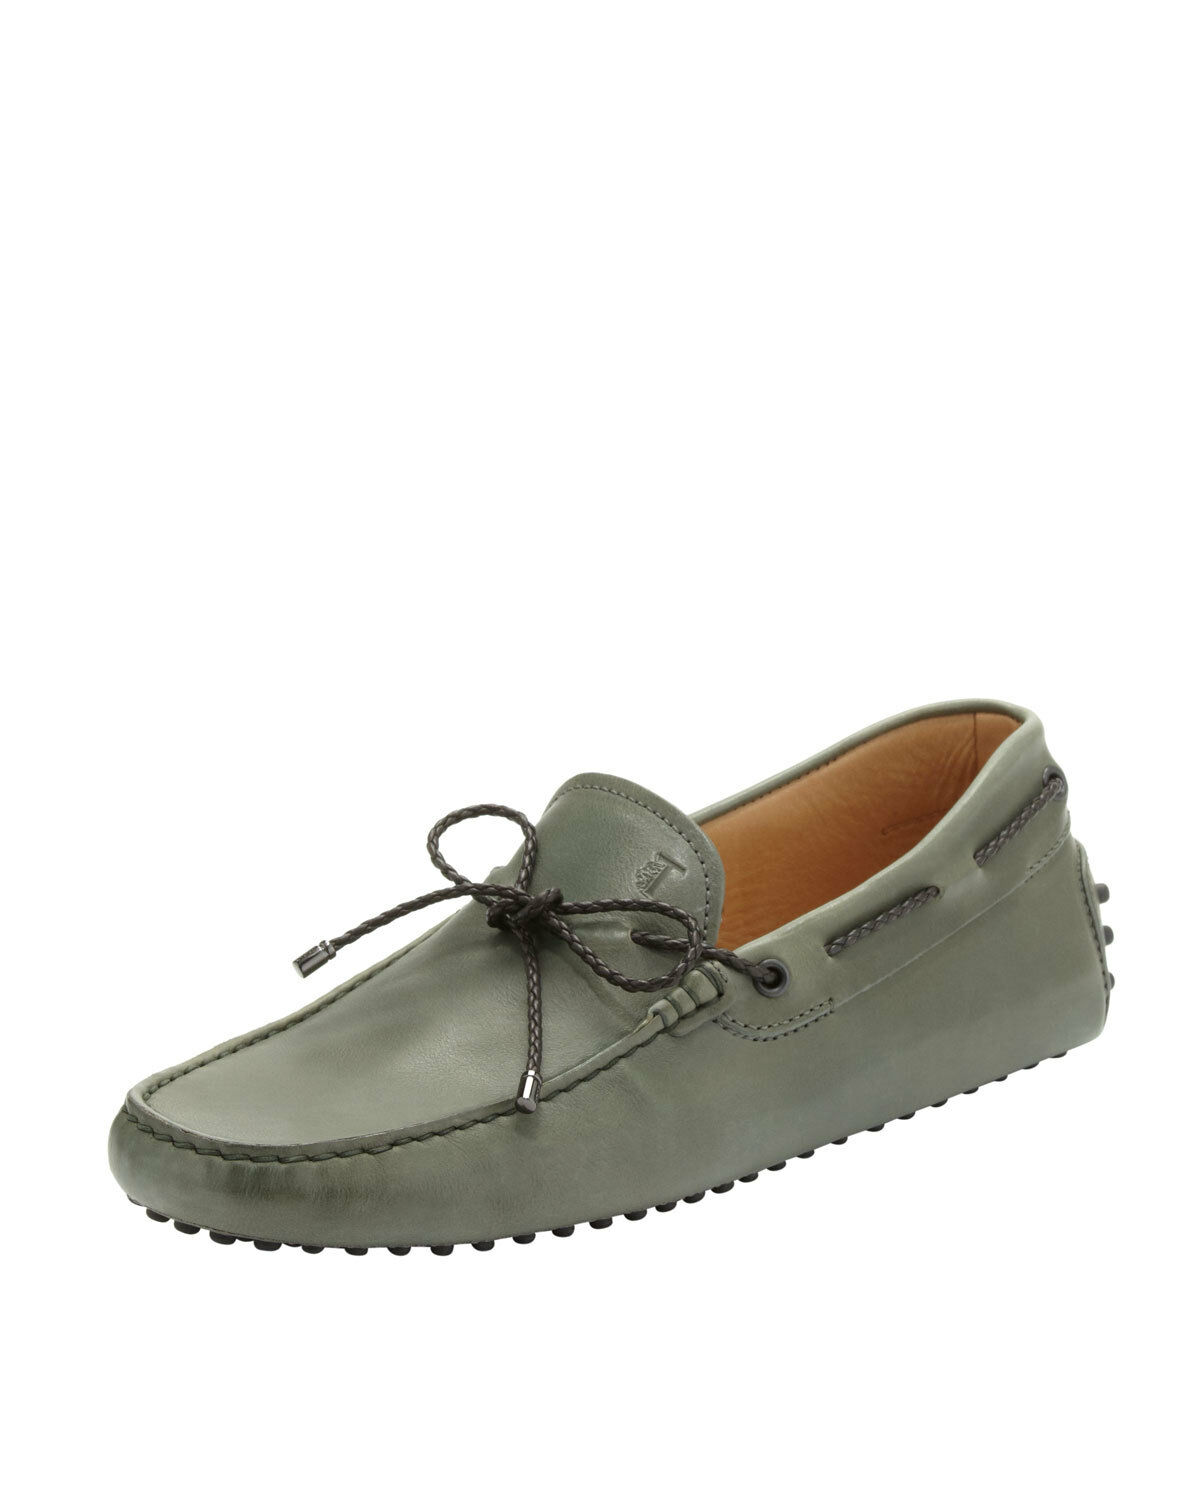 100% AUTH NEW MEN TODS BRAIDED TIE PENNY DRIVERS MOCCASIN  US 11 D